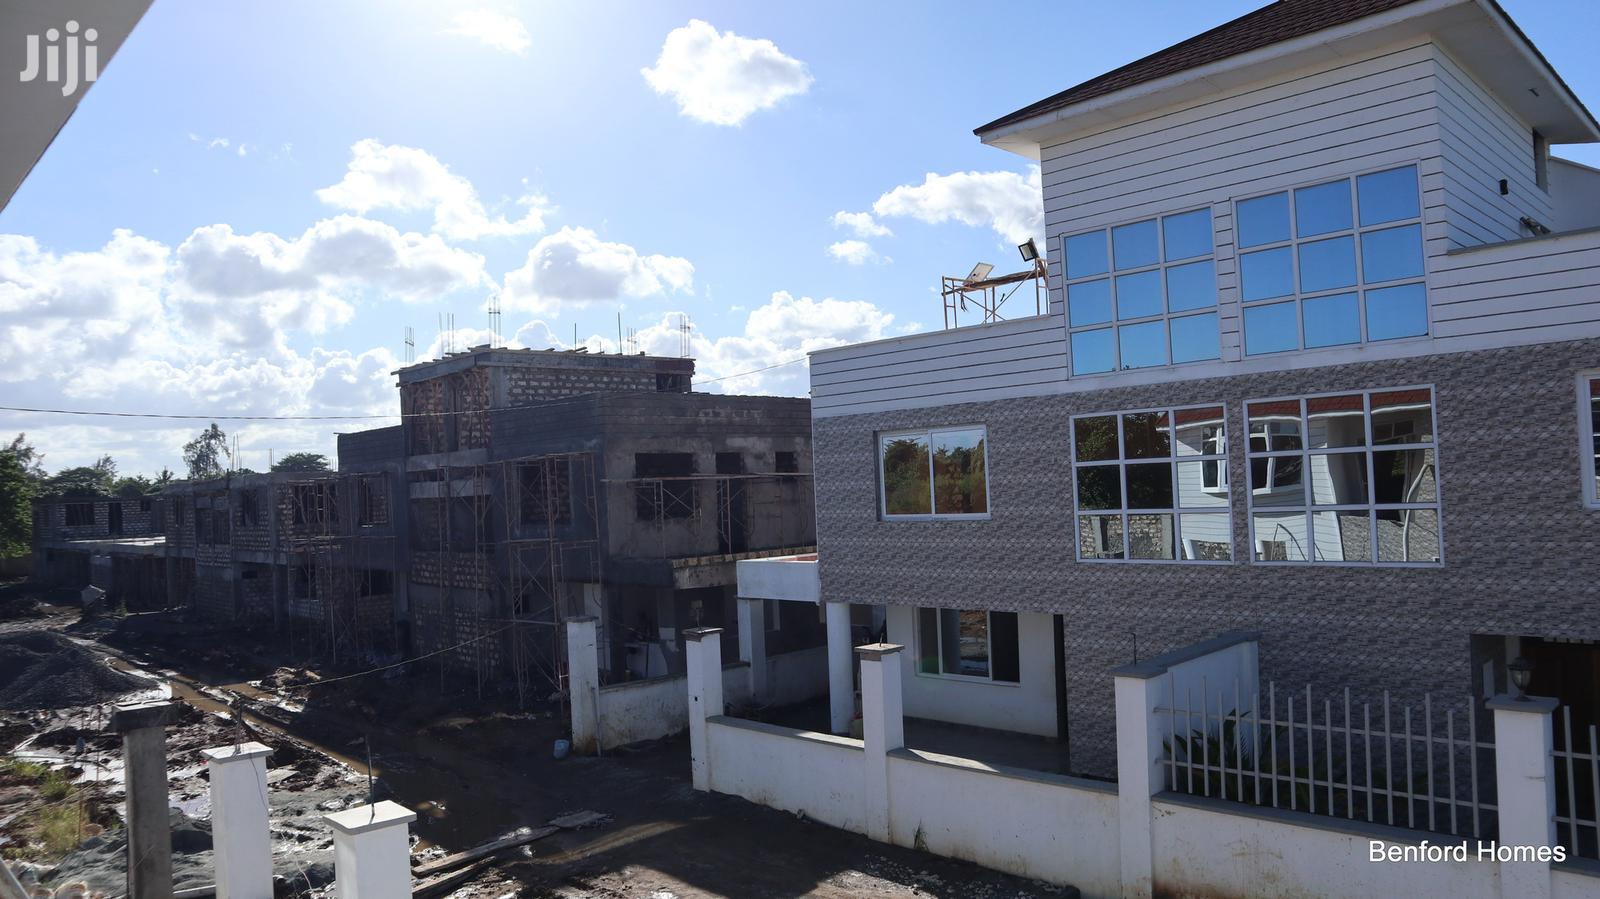 4br Townhouse On Sale Bamburi/ Benford Homes | Houses & Apartments For Sale for sale in Bamburi, Mombasa, Kenya